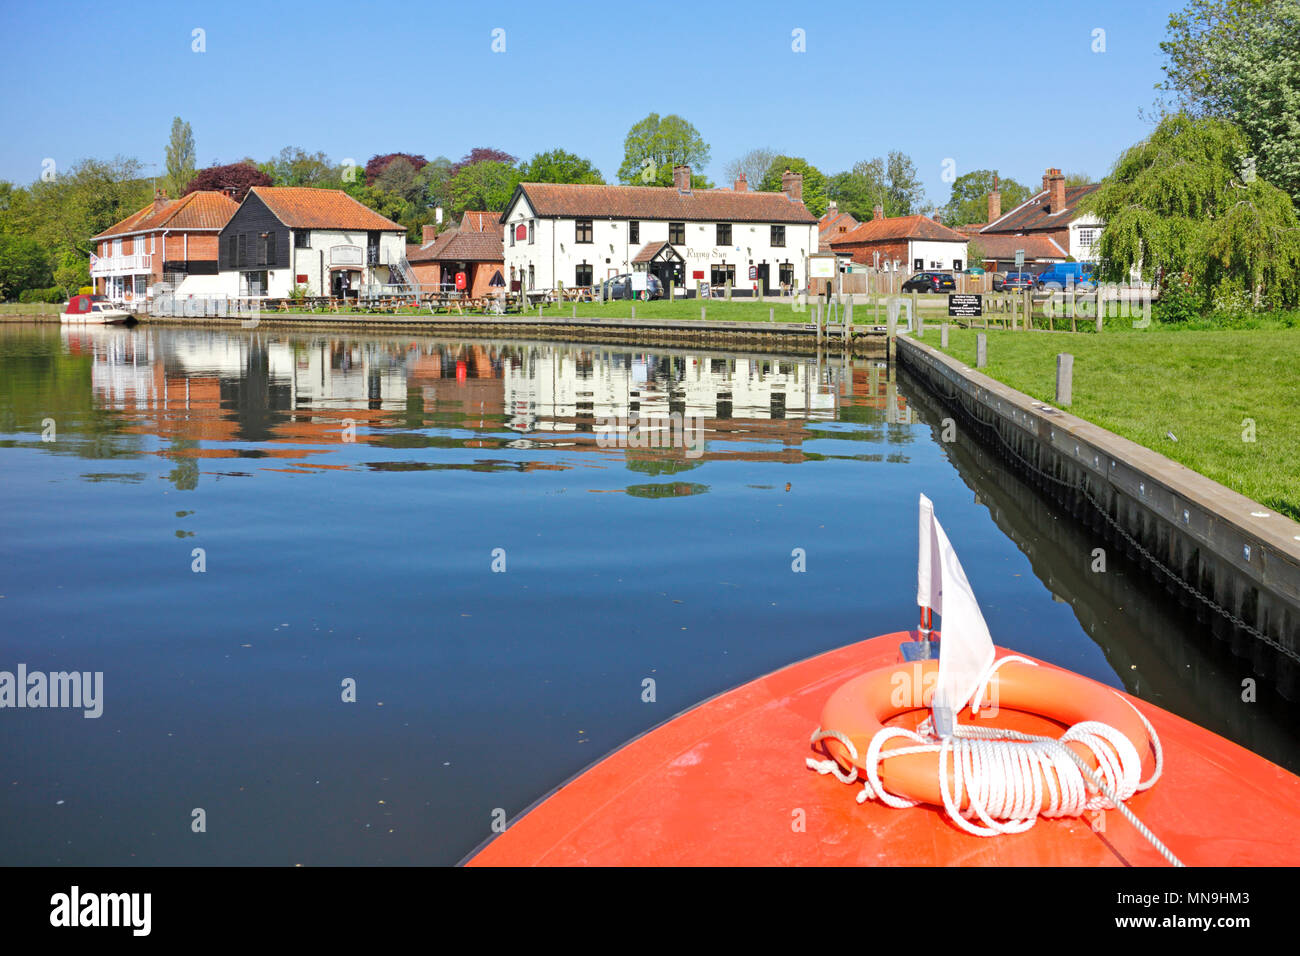 A day hire boat approaching the Rising Sun on the River Bure on the Norfolk Broads at Coltishall, Norfolk, England, United Kingdom, Europe. - Stock Image